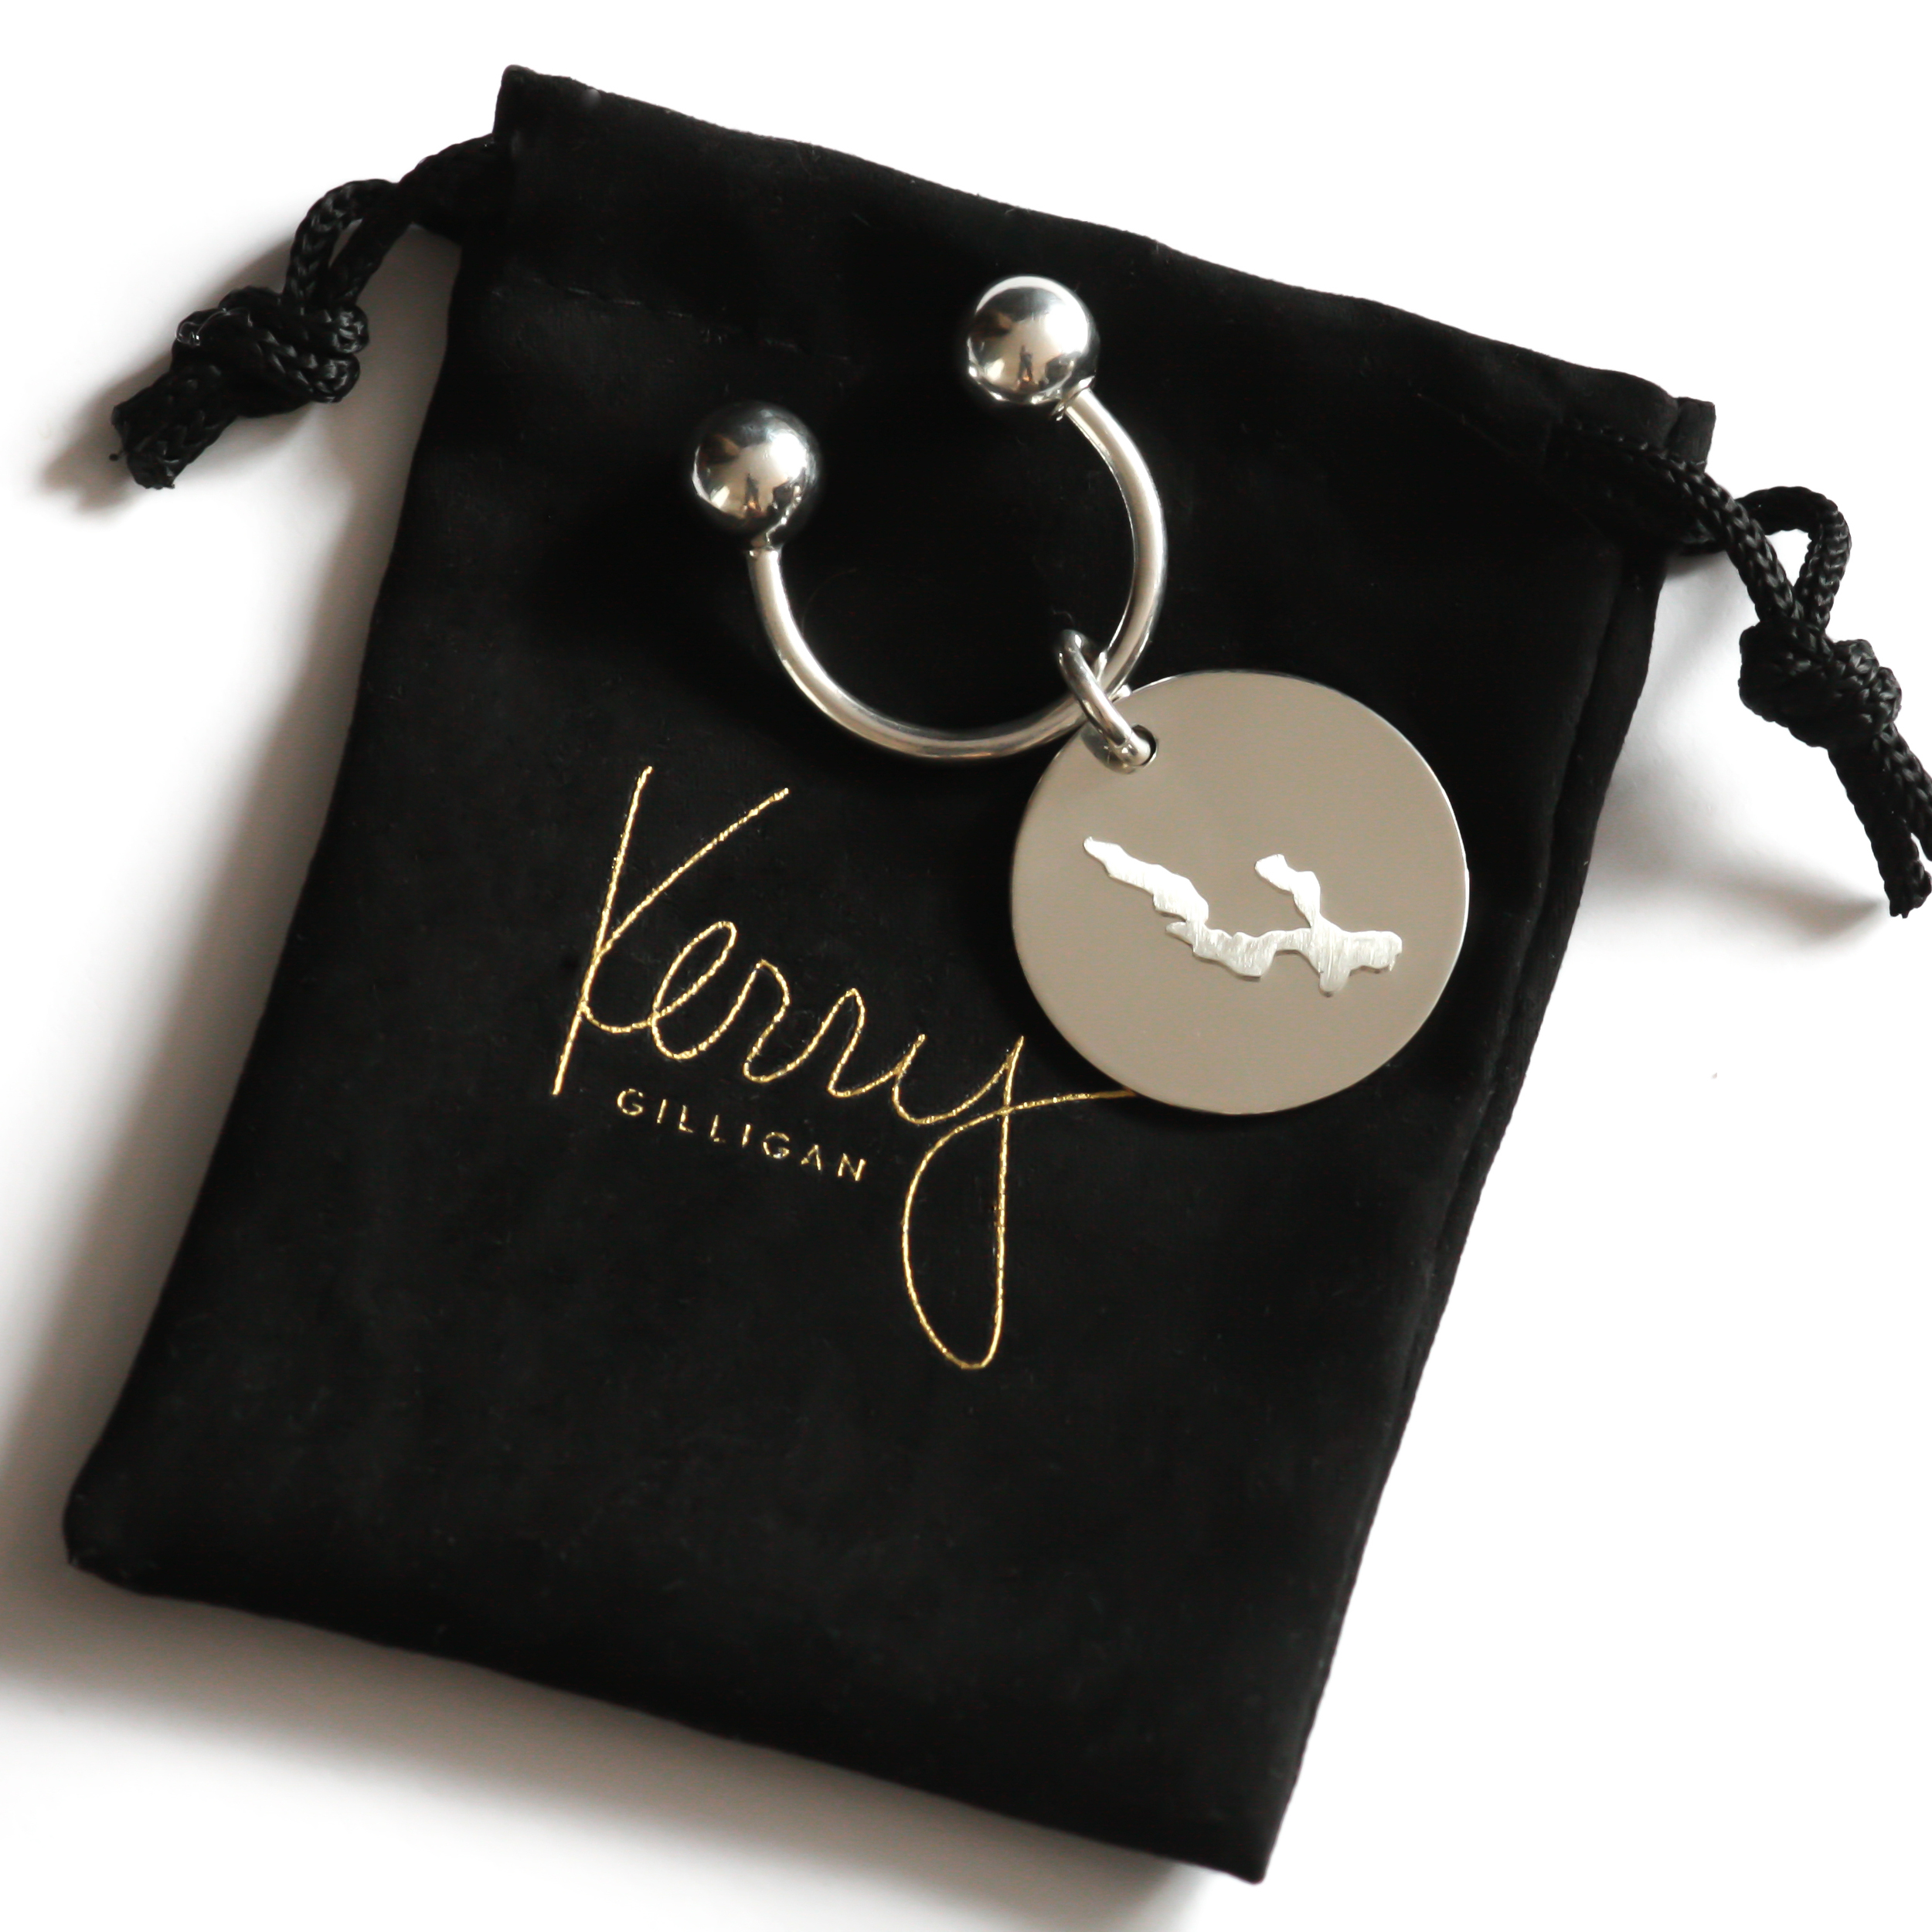 STERLING SILVER KEYCHAIN BY KERRY GILLIGAN